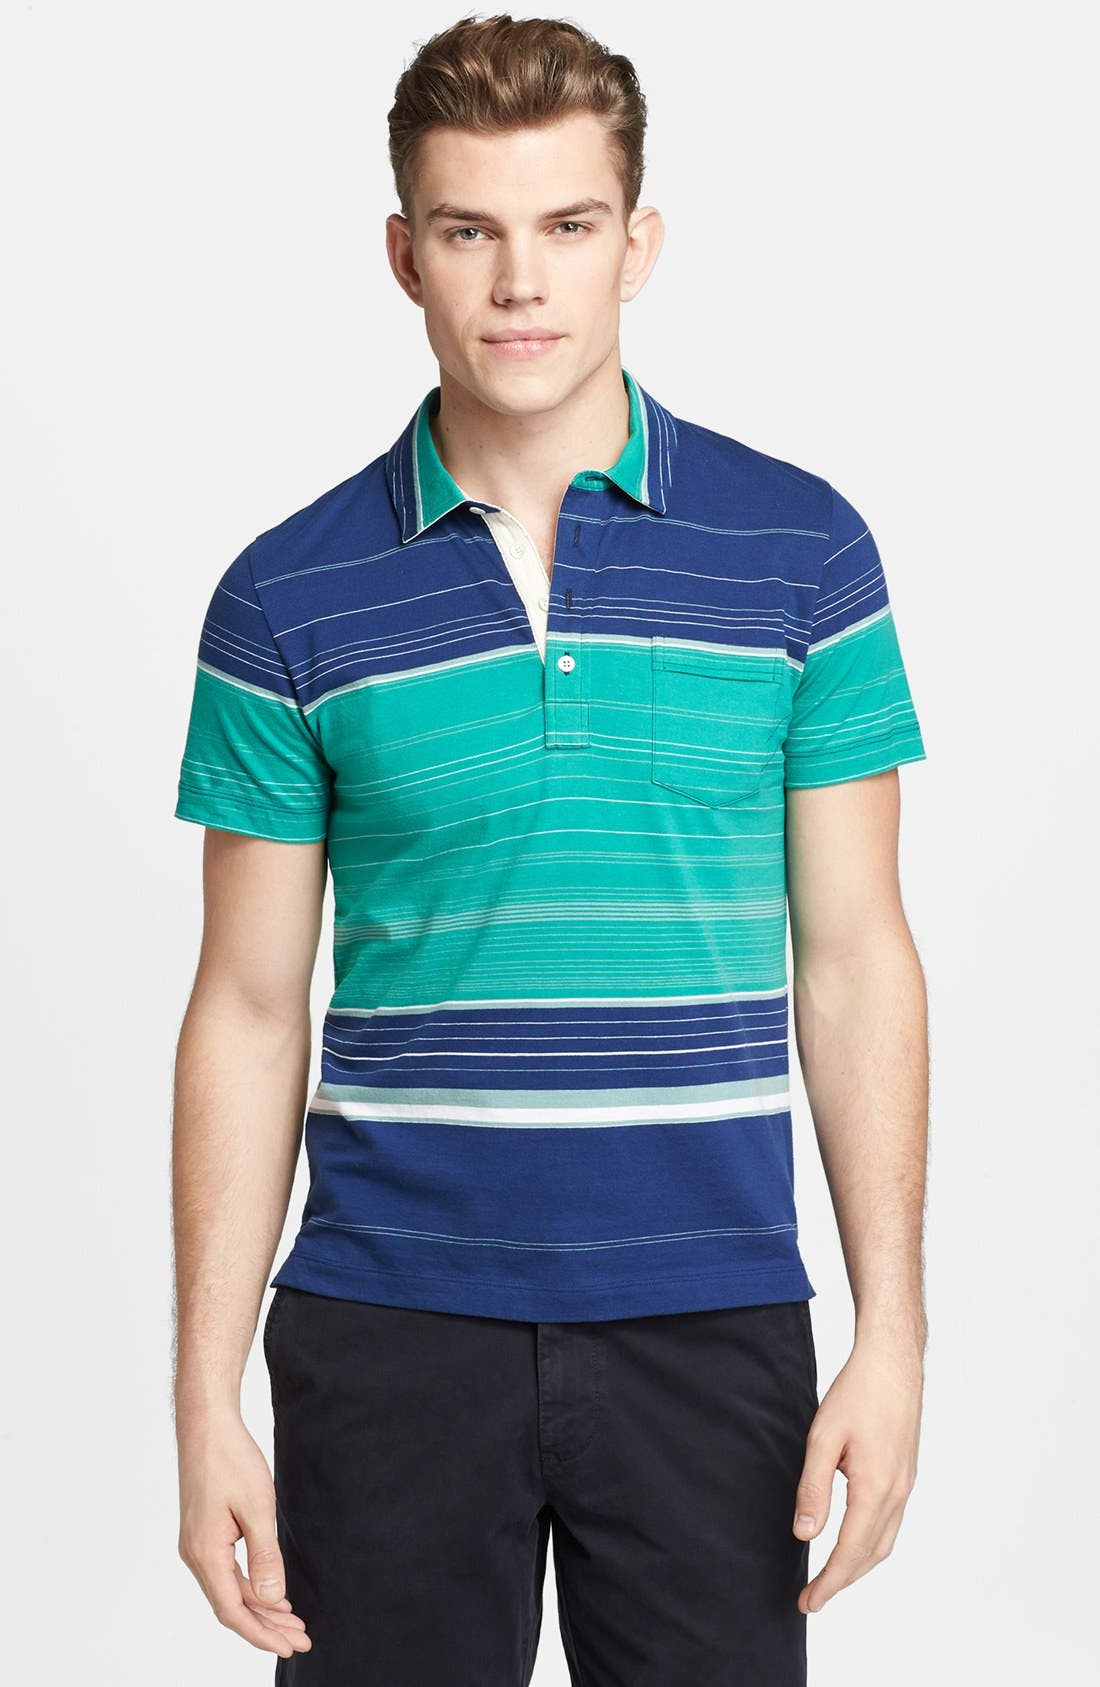 Alternate Image 1 Selected - Billy Reid 'Pensacola' Block Stripe Jersey Polo